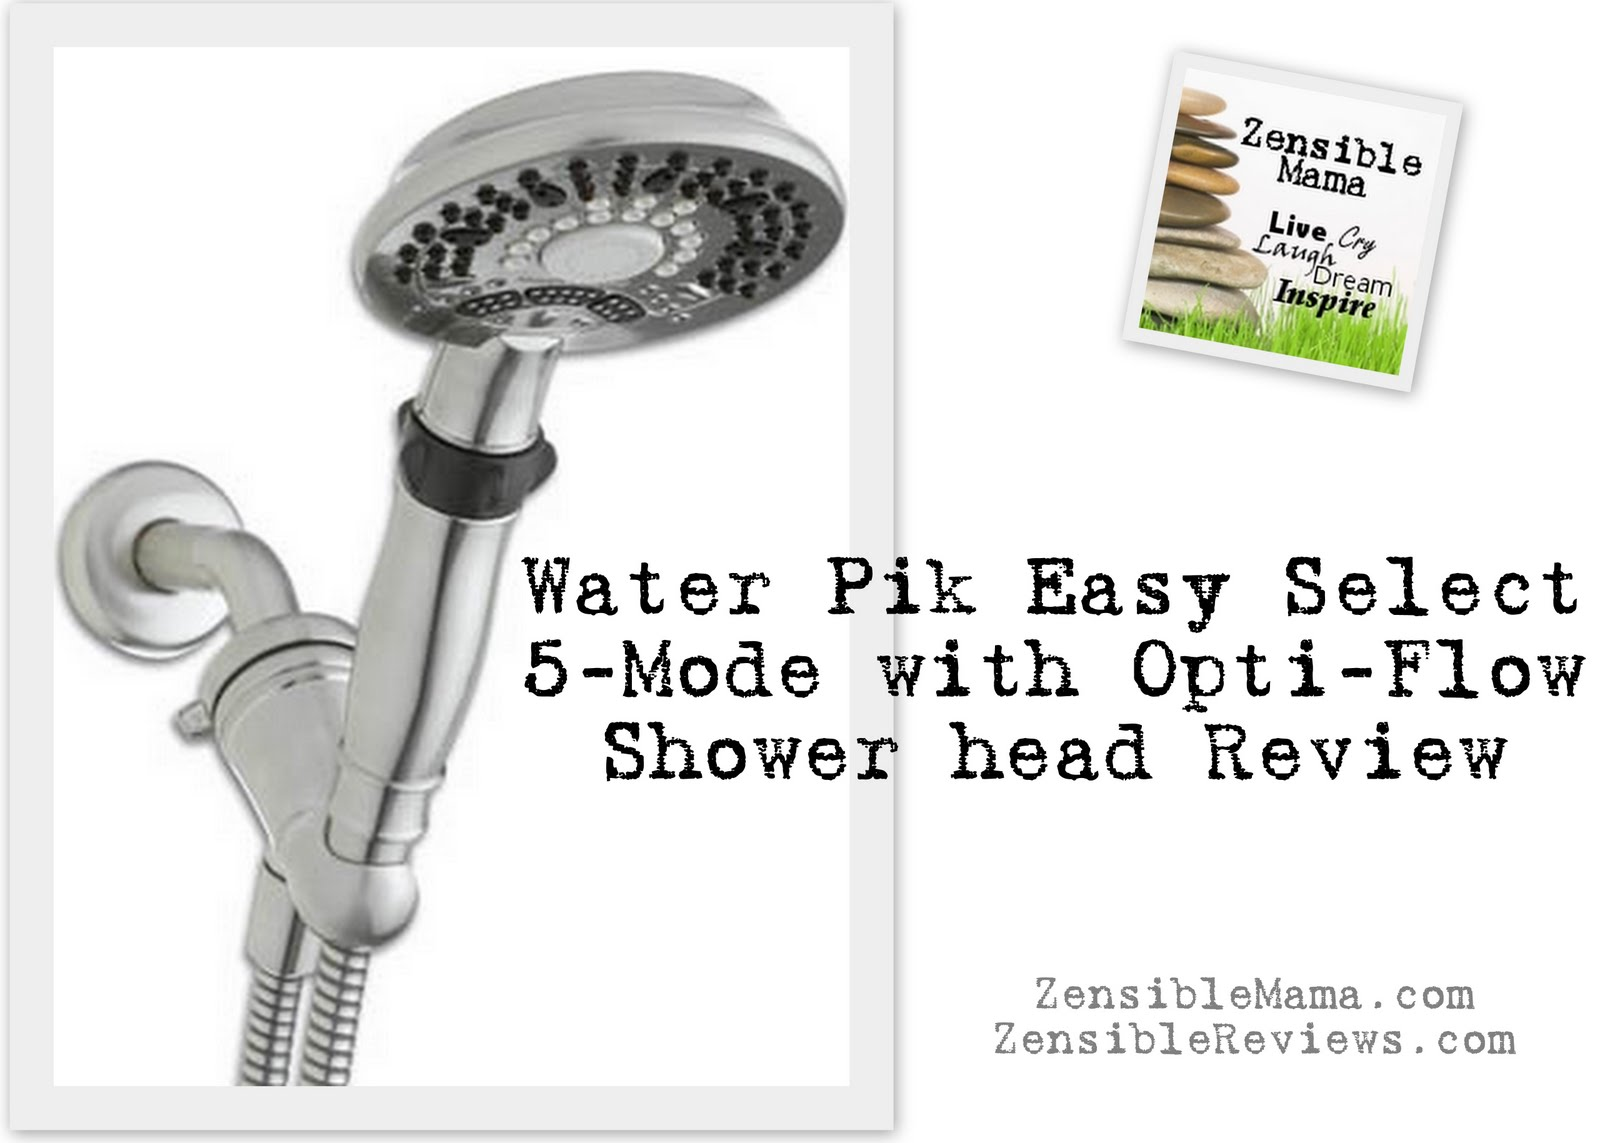 Zensible Mama: New Water Pik Easy Select with Opti-Flow Shower head ...